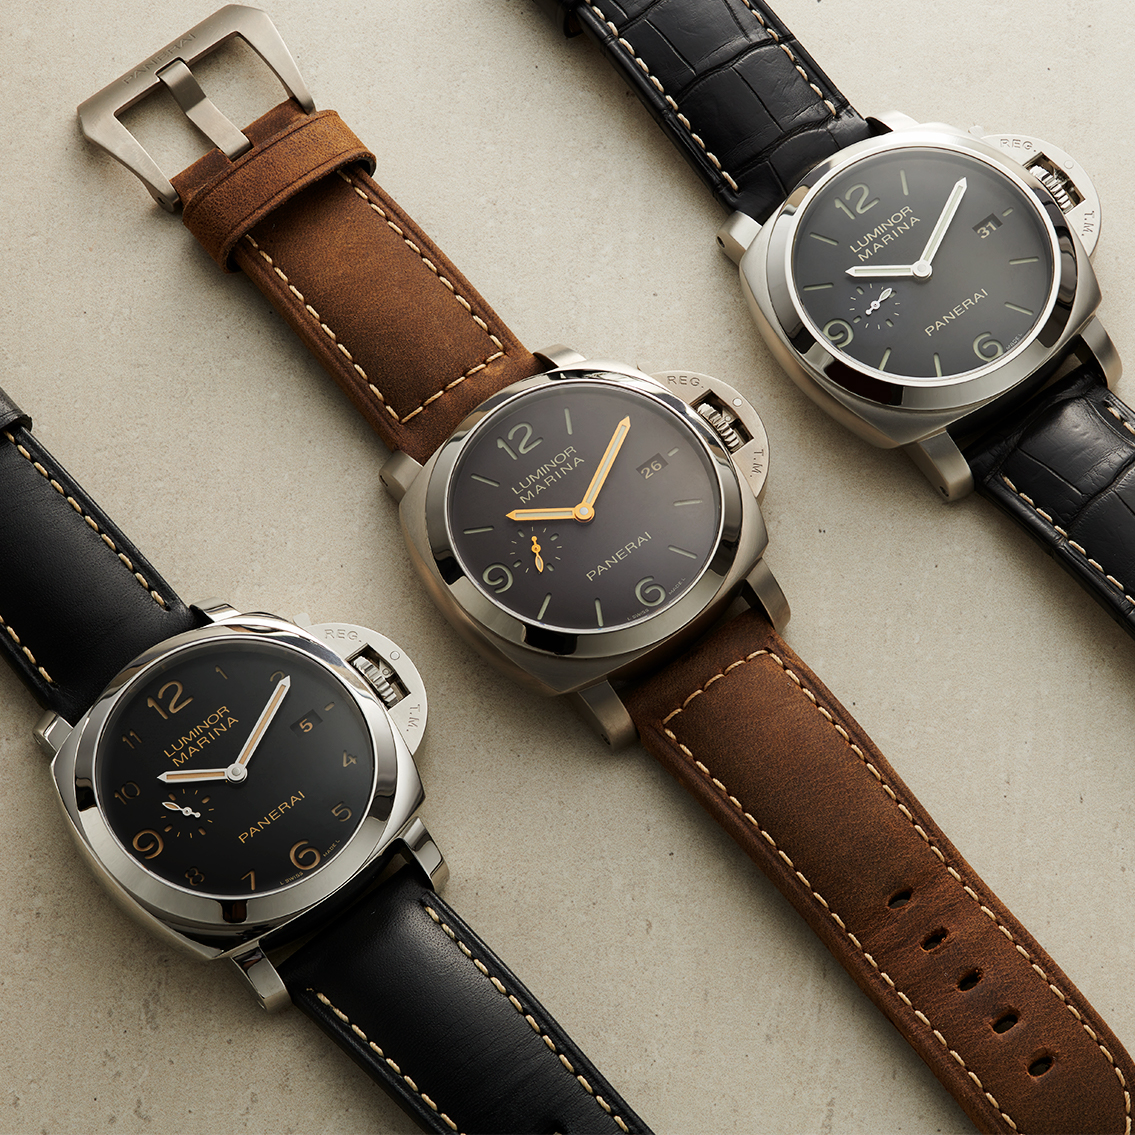 Charlie-Sin-Panerai-watch-group-photo